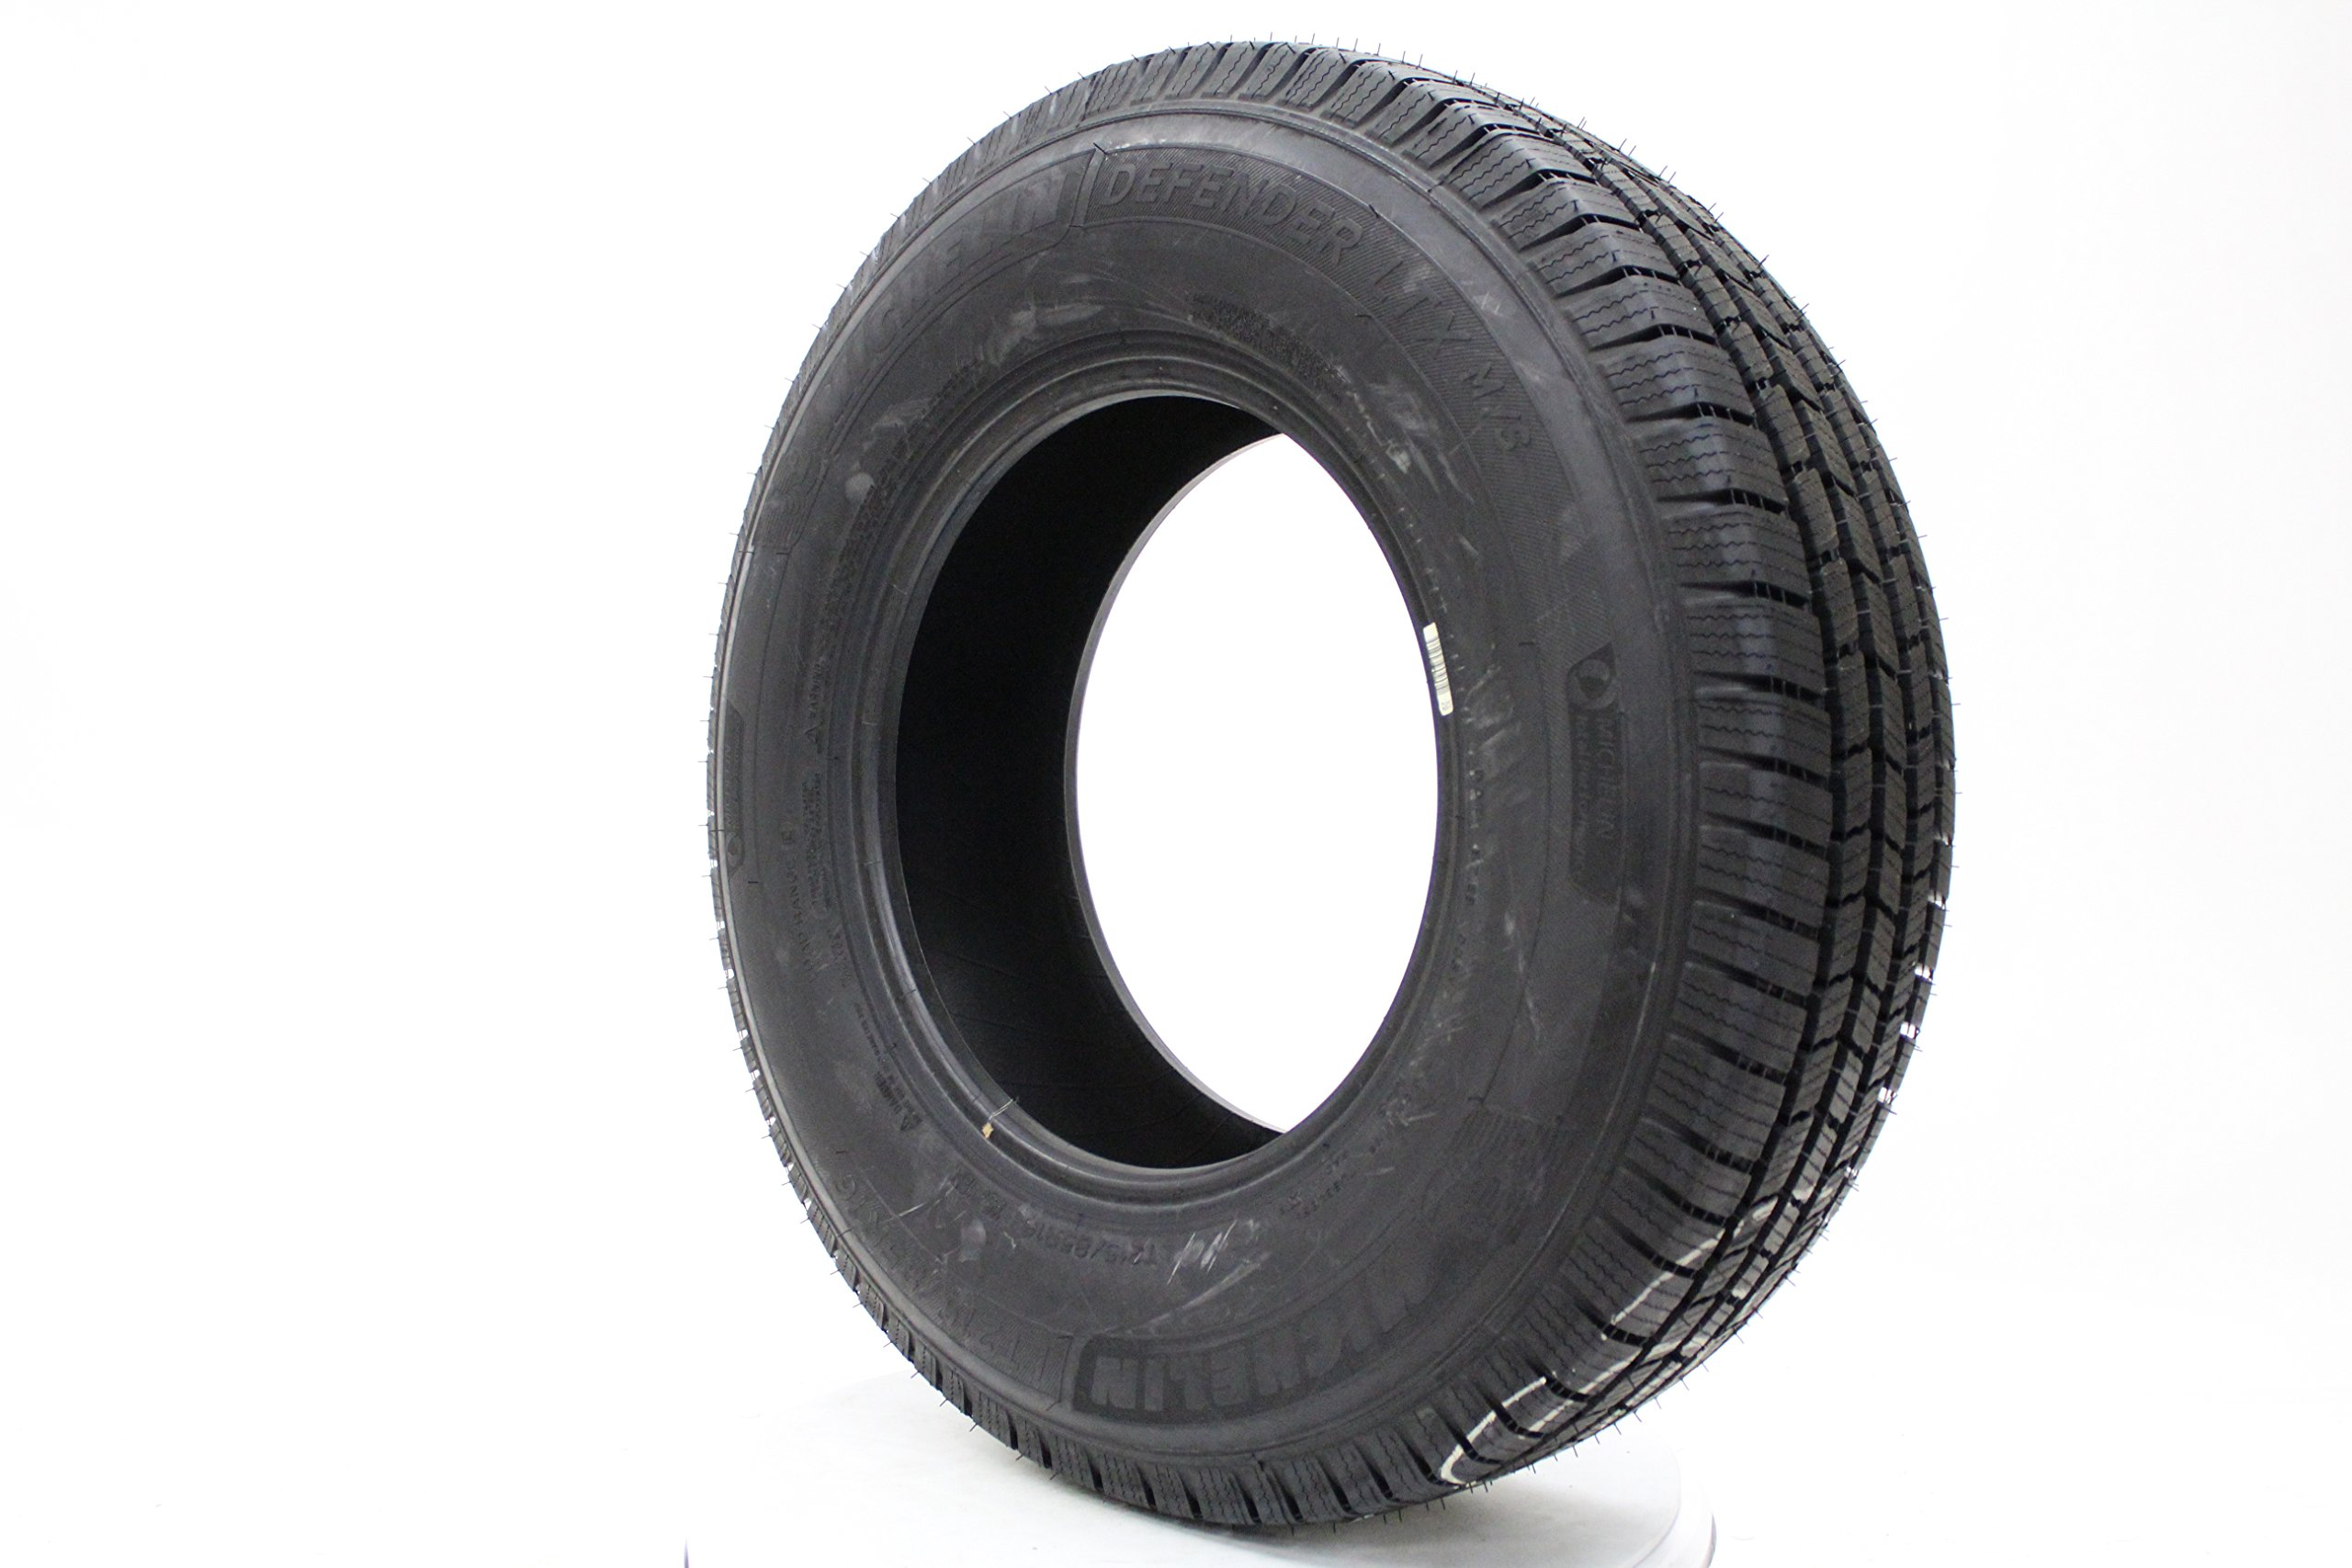 Michelin Defender LTX M/S All-Season Tire 235/70R16/XL 109T